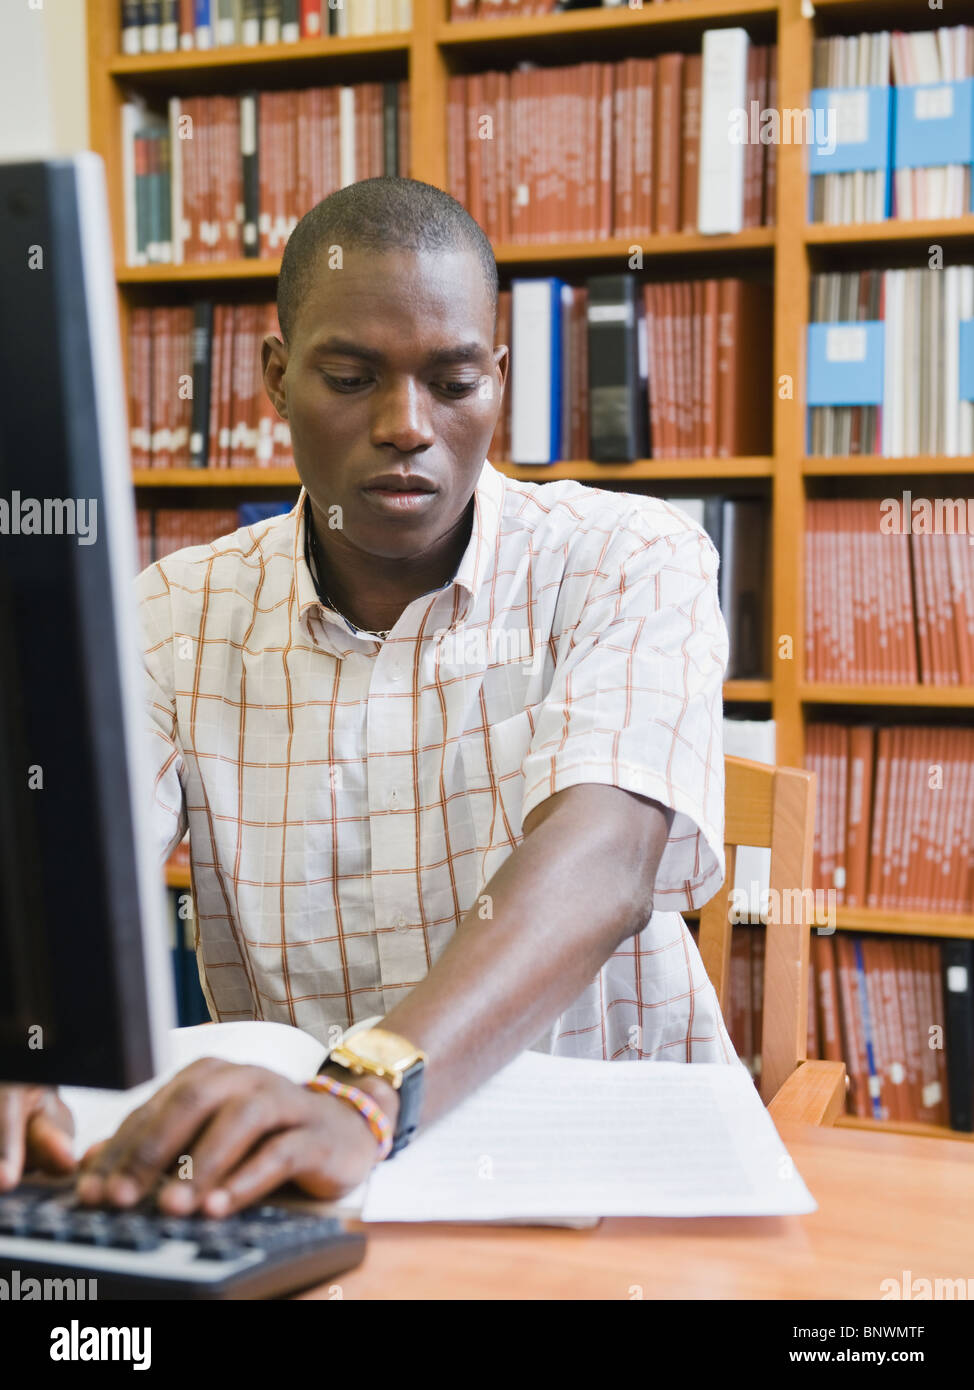 College student working in library - Stock Image